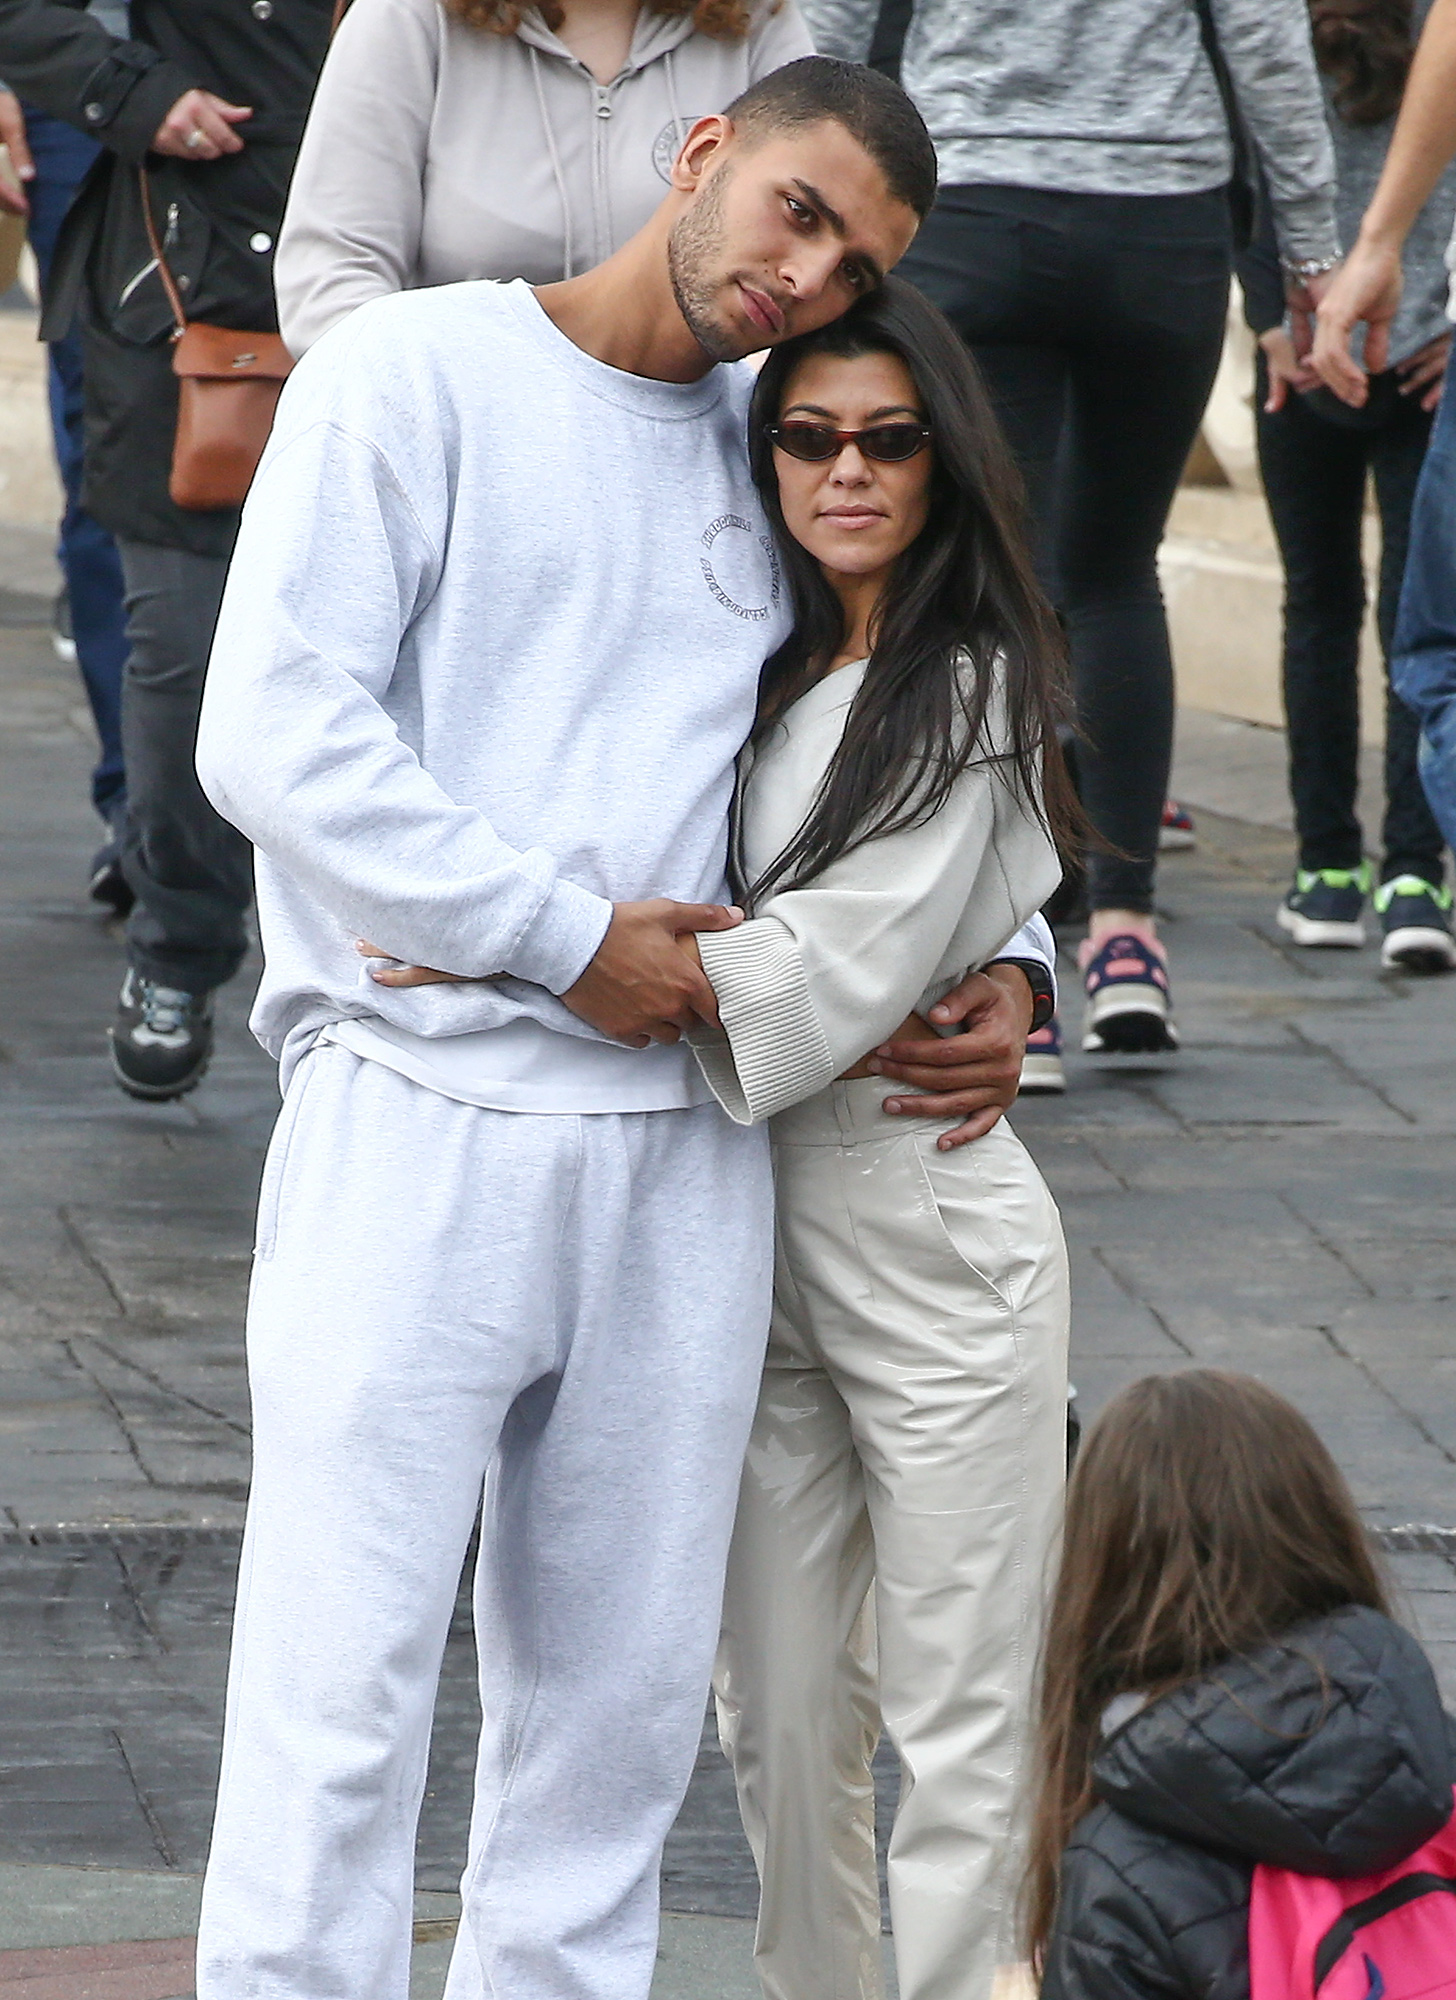 Kourtney Kardashian and Younes Bendjima enjoy a trip on Big Thunder Mountain at Disneyland Paris